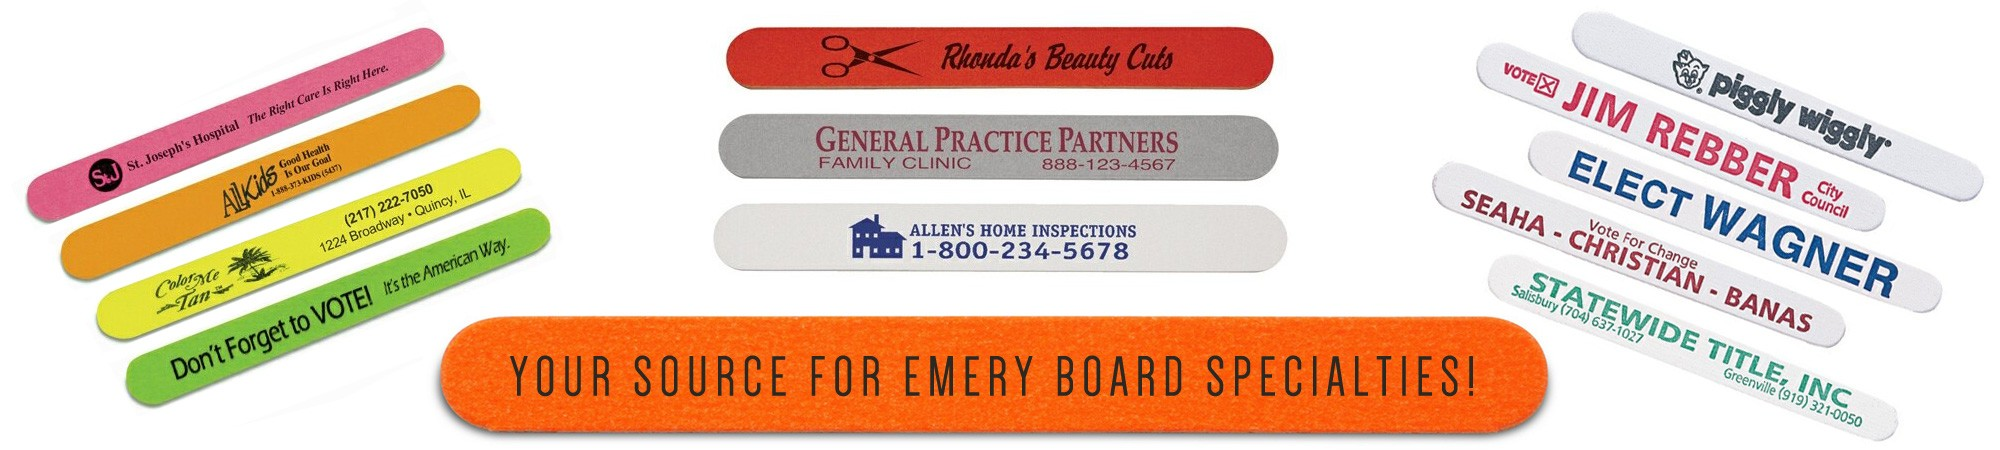 All Emery Boards